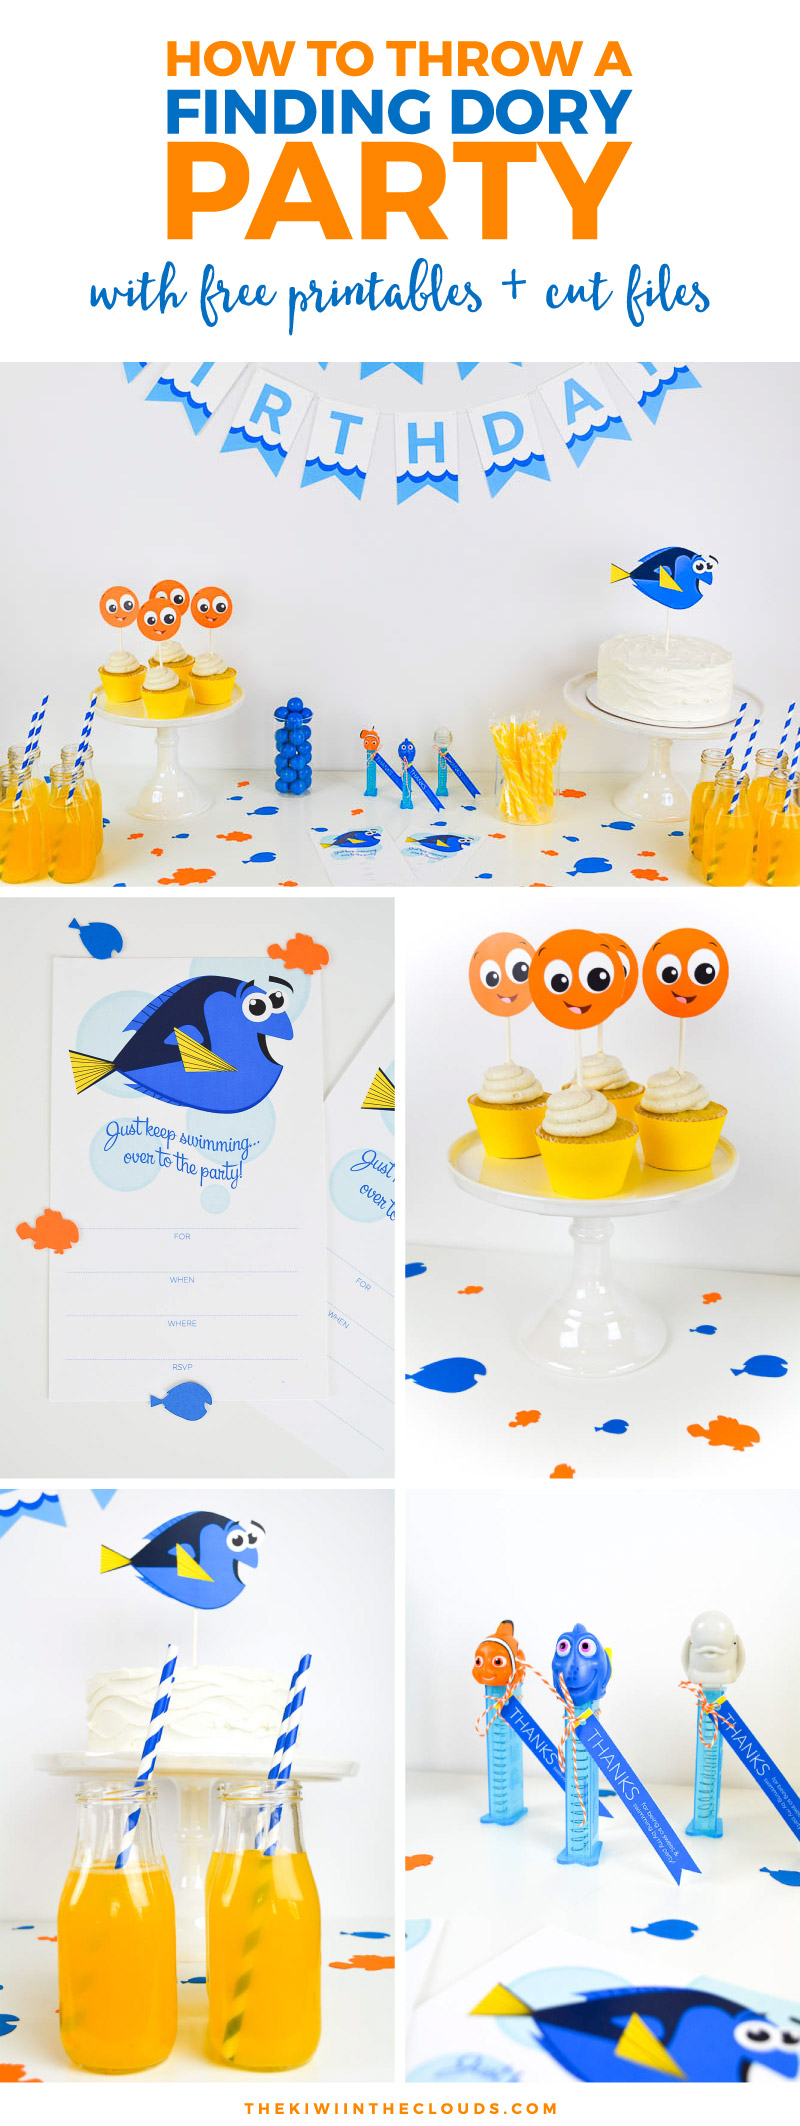 Finding Dory printables | party printables | Disney activities